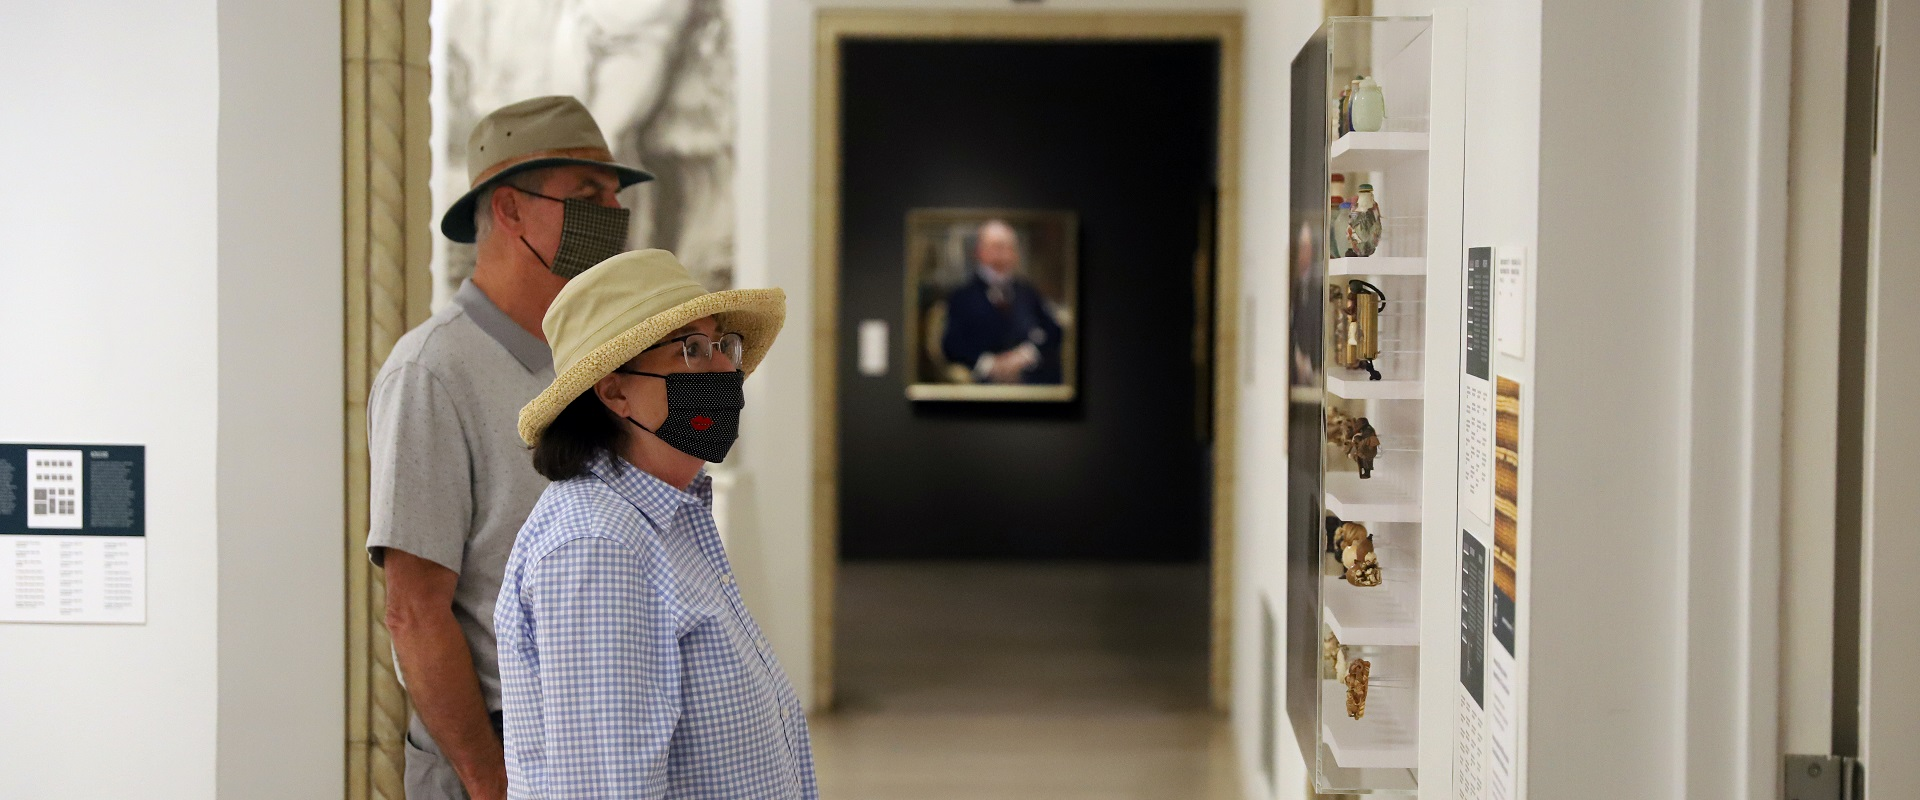 San Diego Museum of Art visitors wearing masks while looking at art work